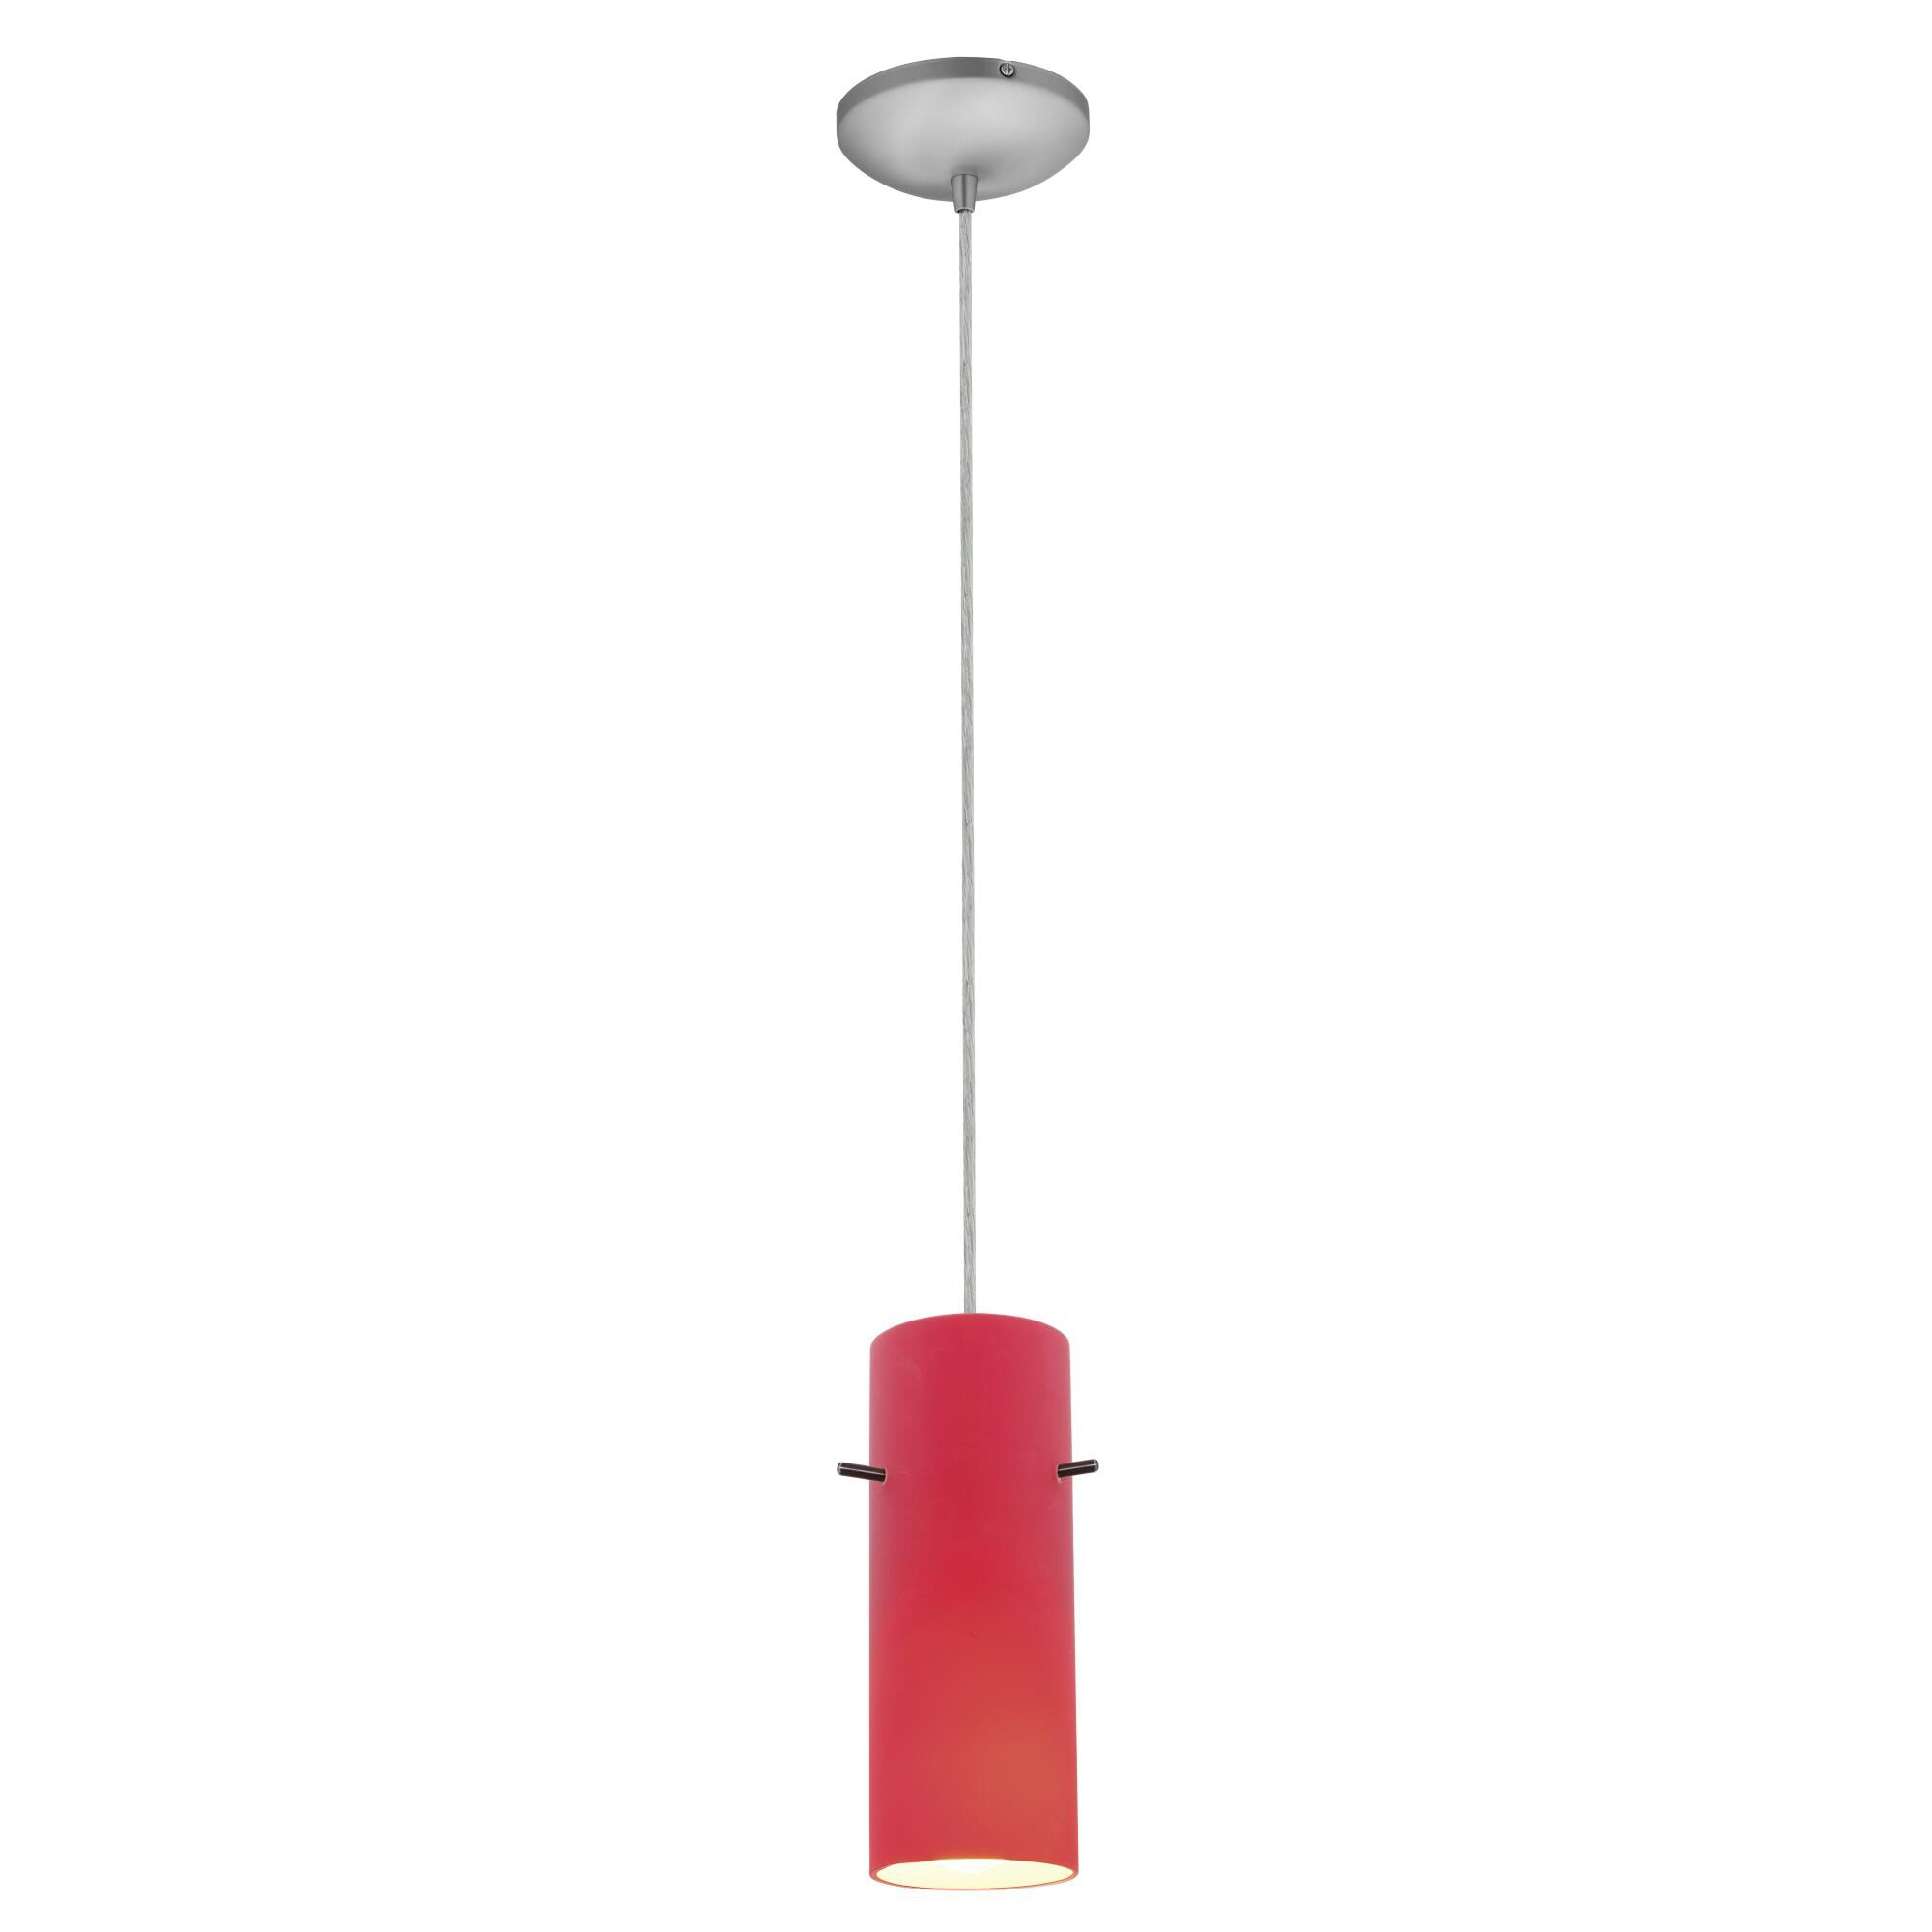 Access Lighting Cylinder LED Mini Pendant Cylinder 28030 3C BSRED Modern Contemporary